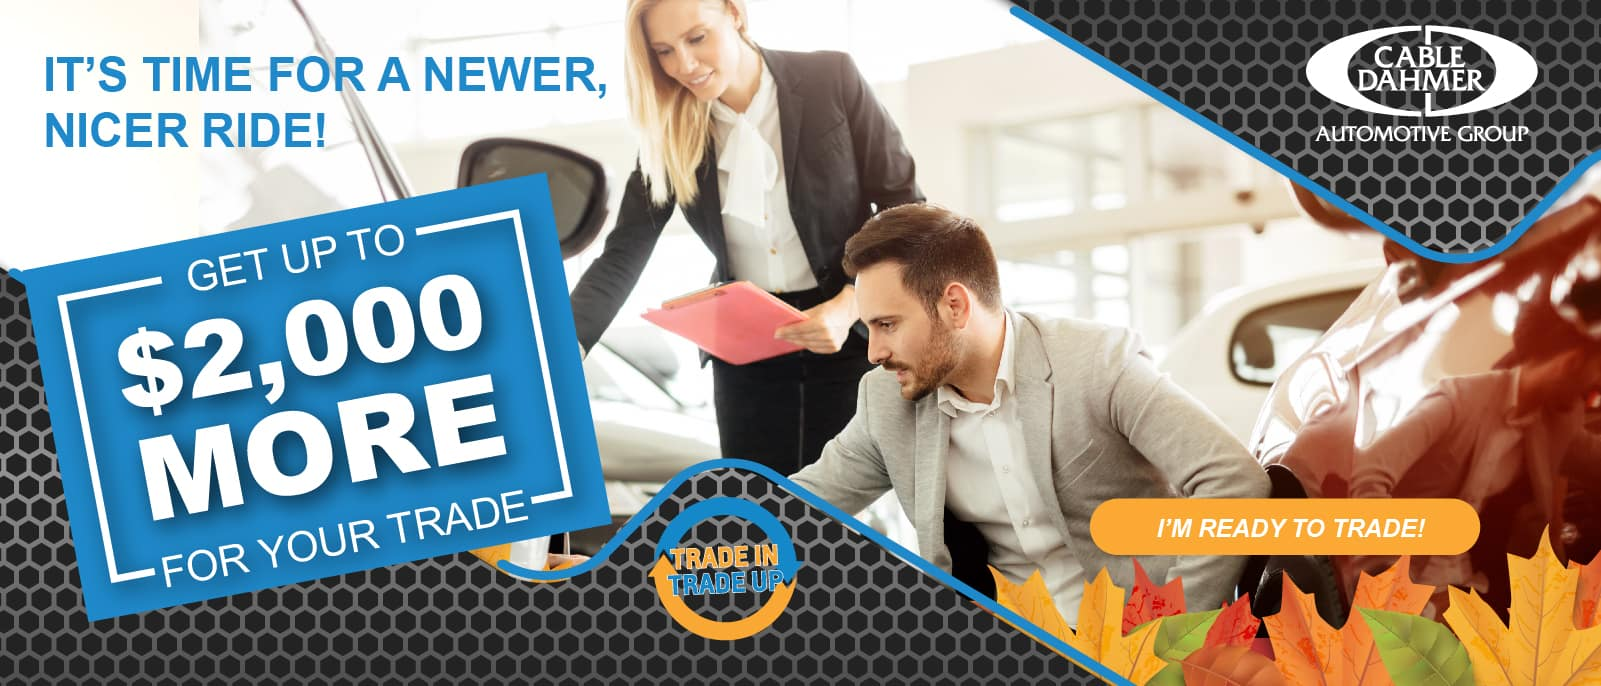 Cable Dahmer – Marketing-New website Rotators – fall – ALL_Website Rotator – $2000 more for trade